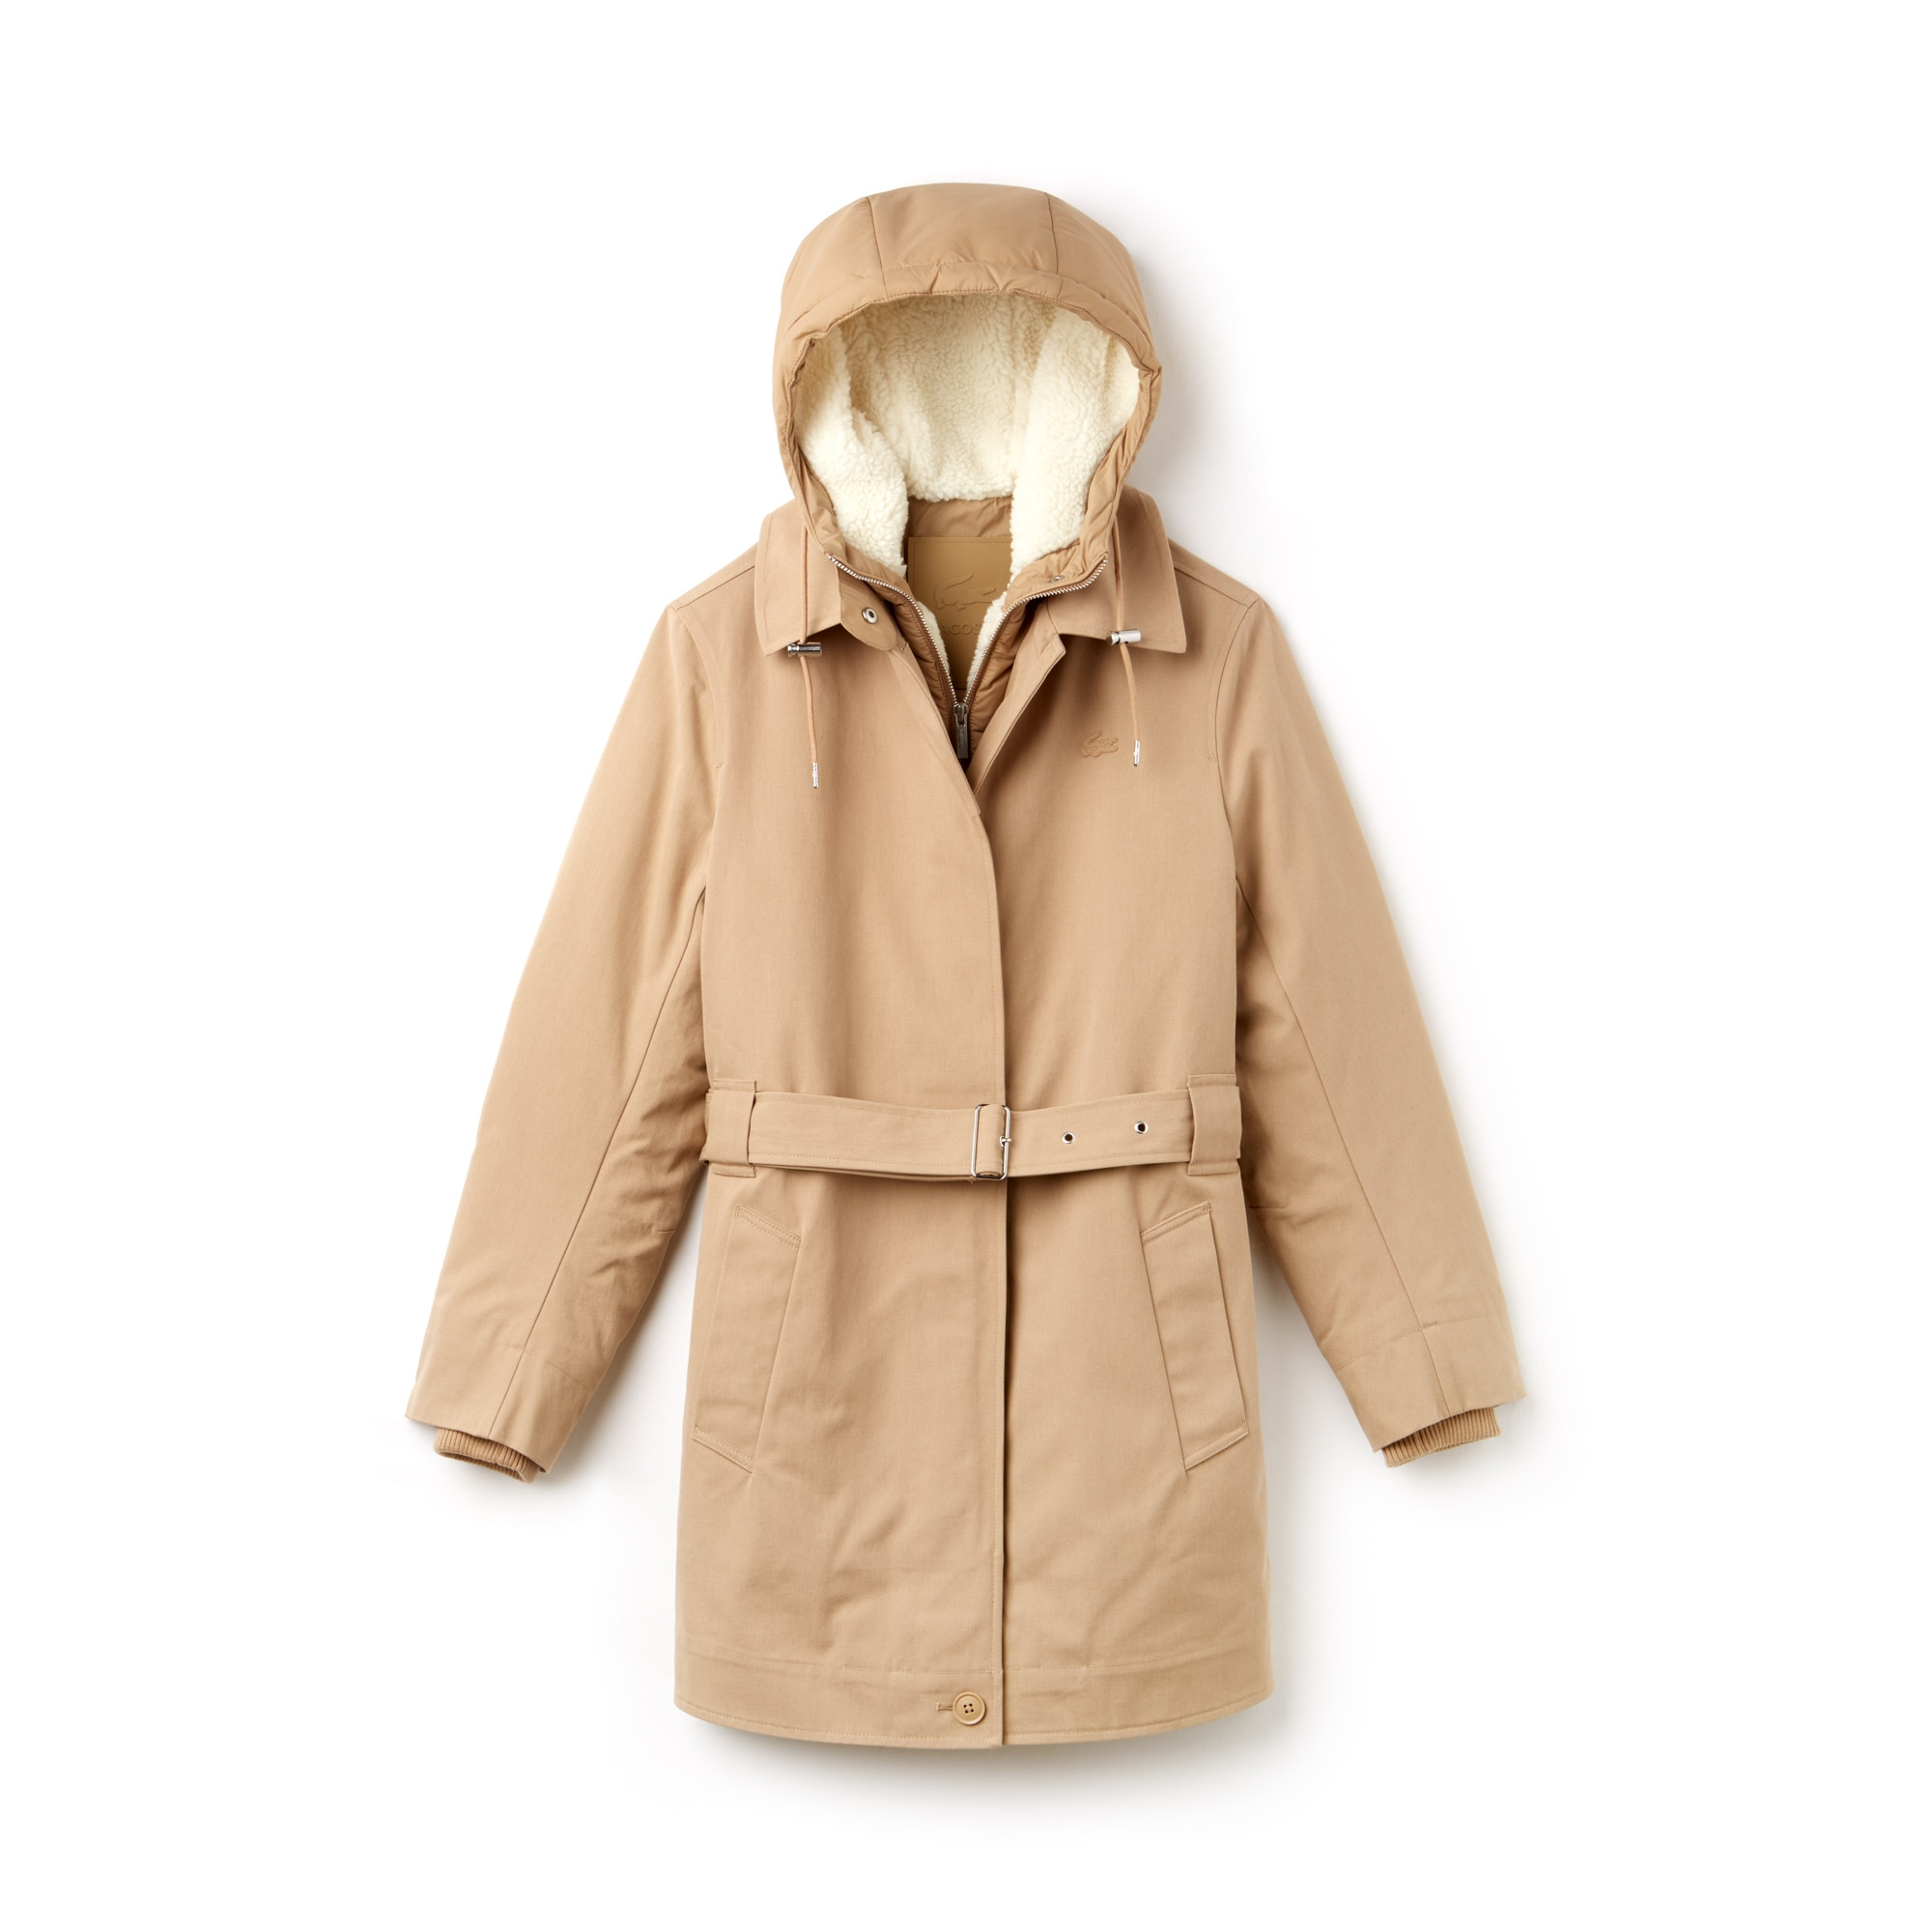 Women's 3-in-1 Detachable Jacket Hooded Cotton Canvas Parka